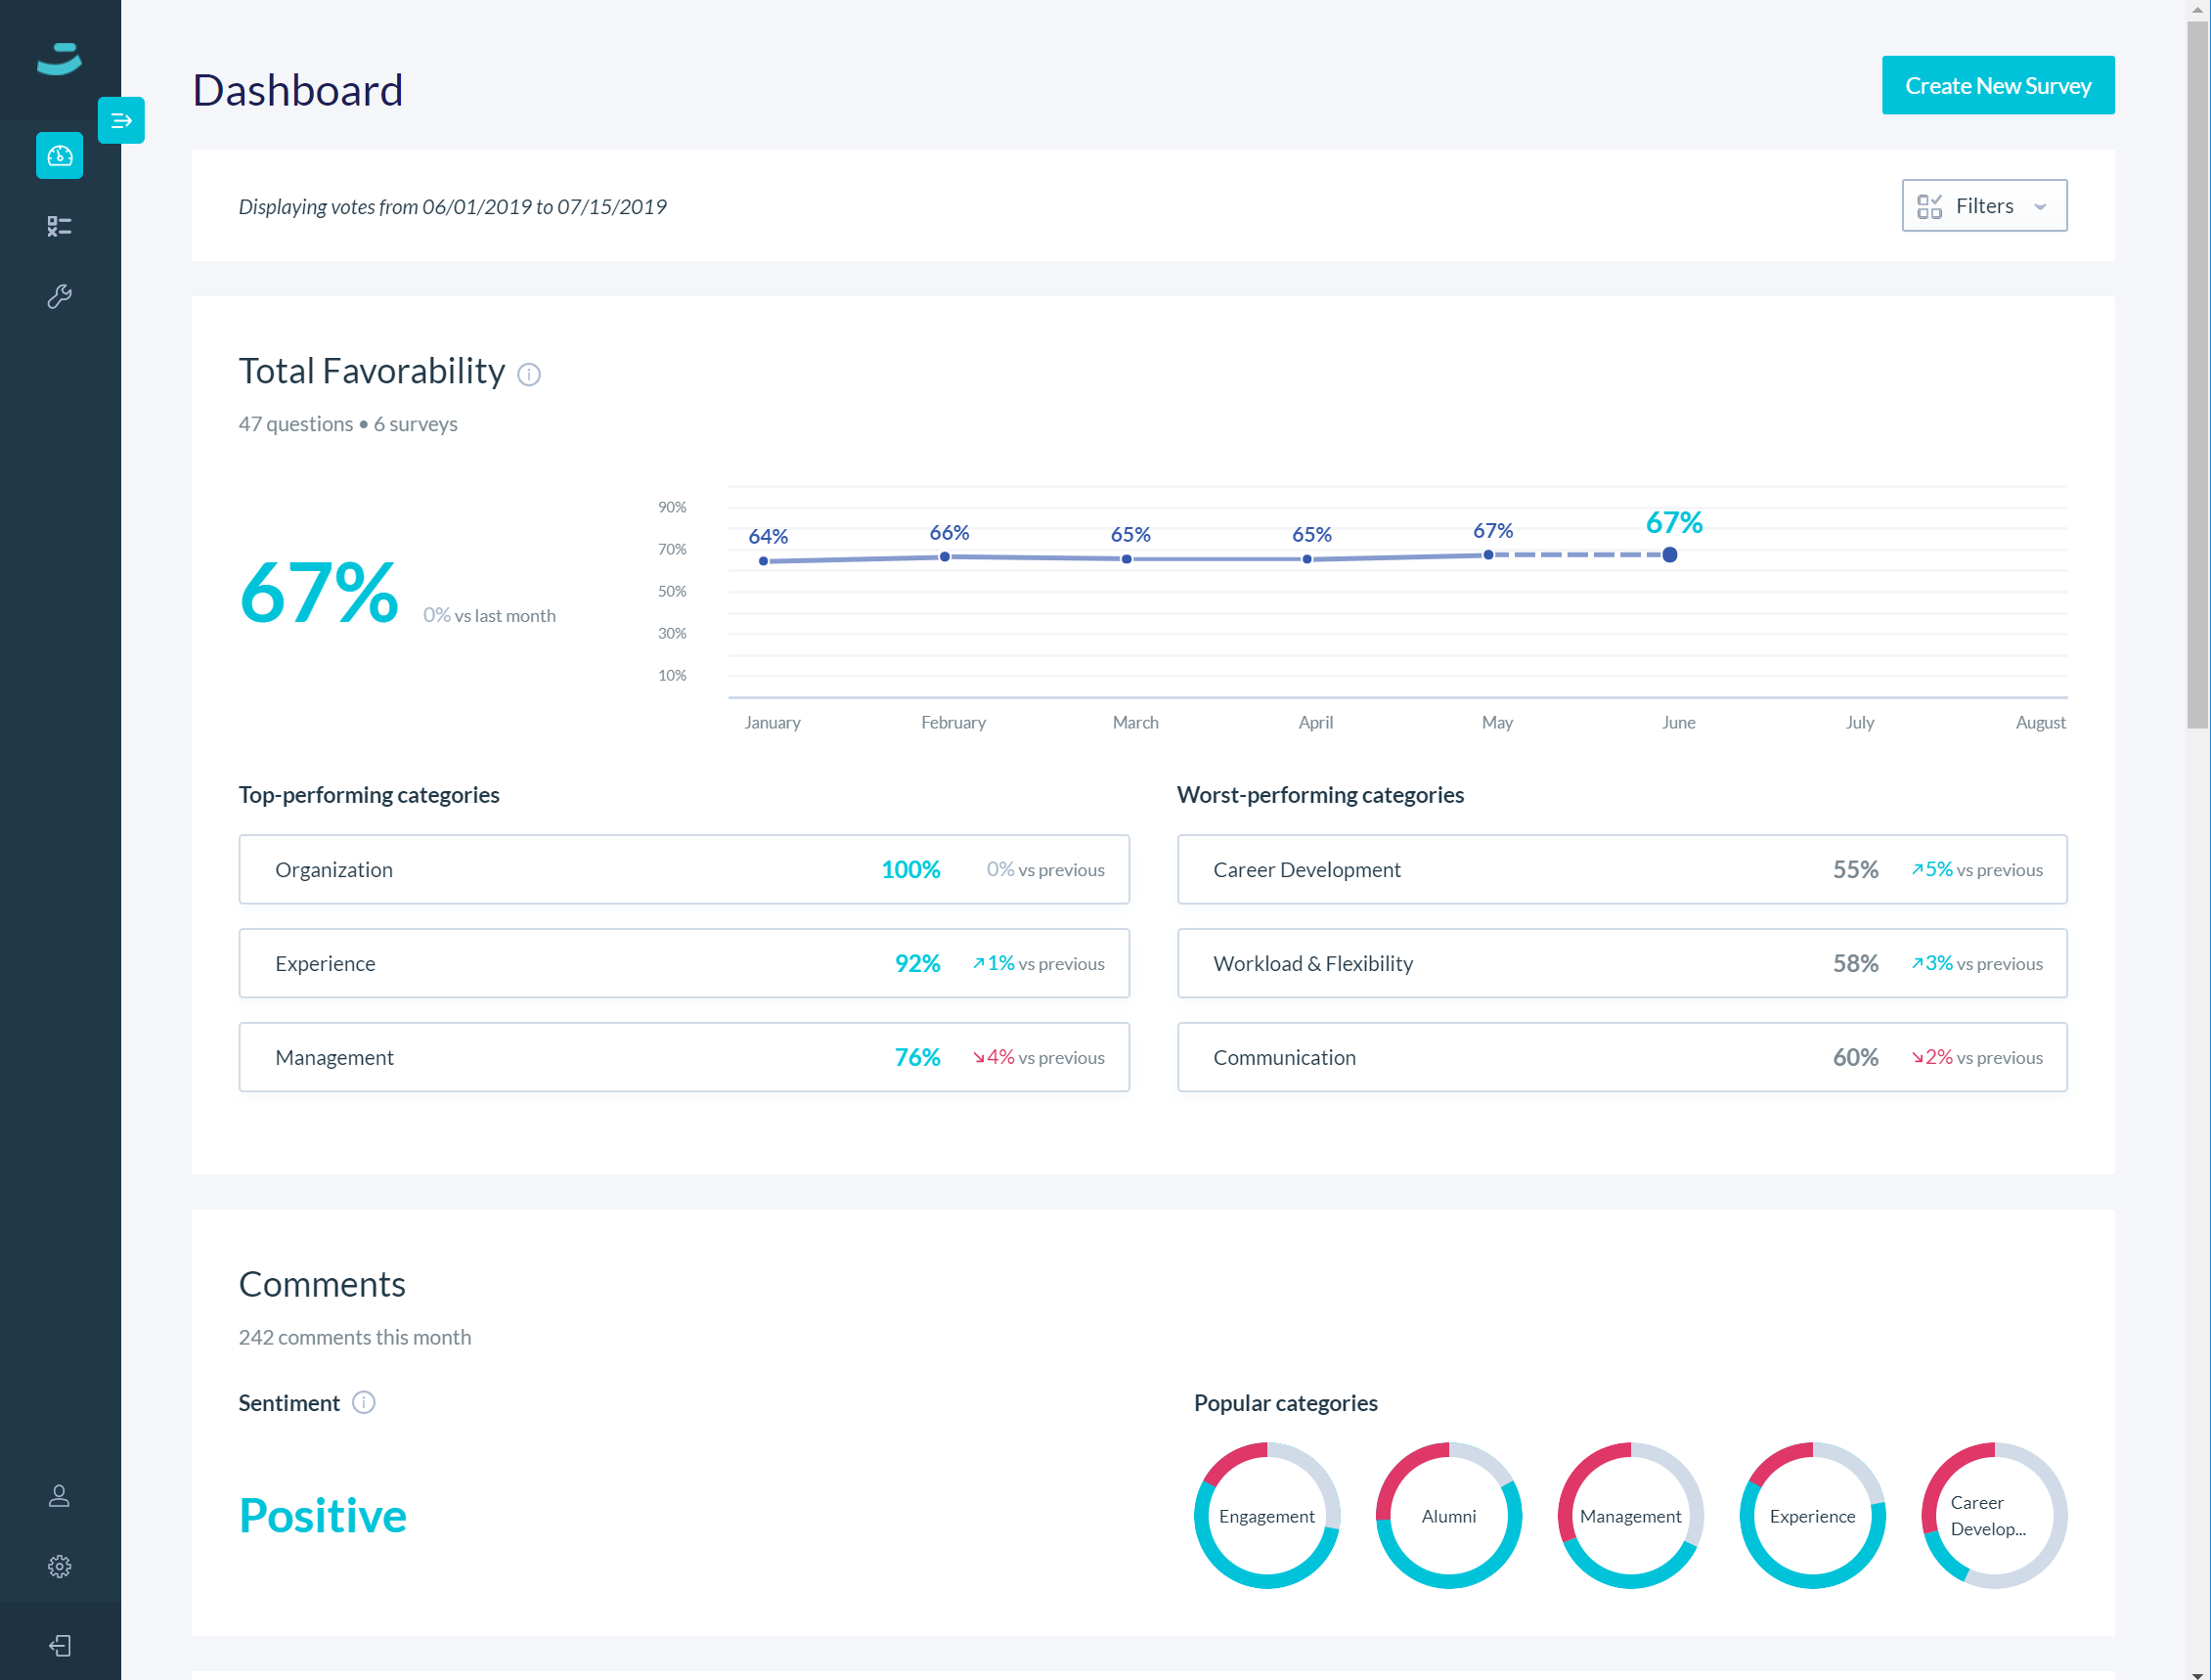 Hyphen dashboard to understand the overall favorability & sentiment score of your company. HR, Leadership and Managers automatically have visibility to critical data related to their teams.